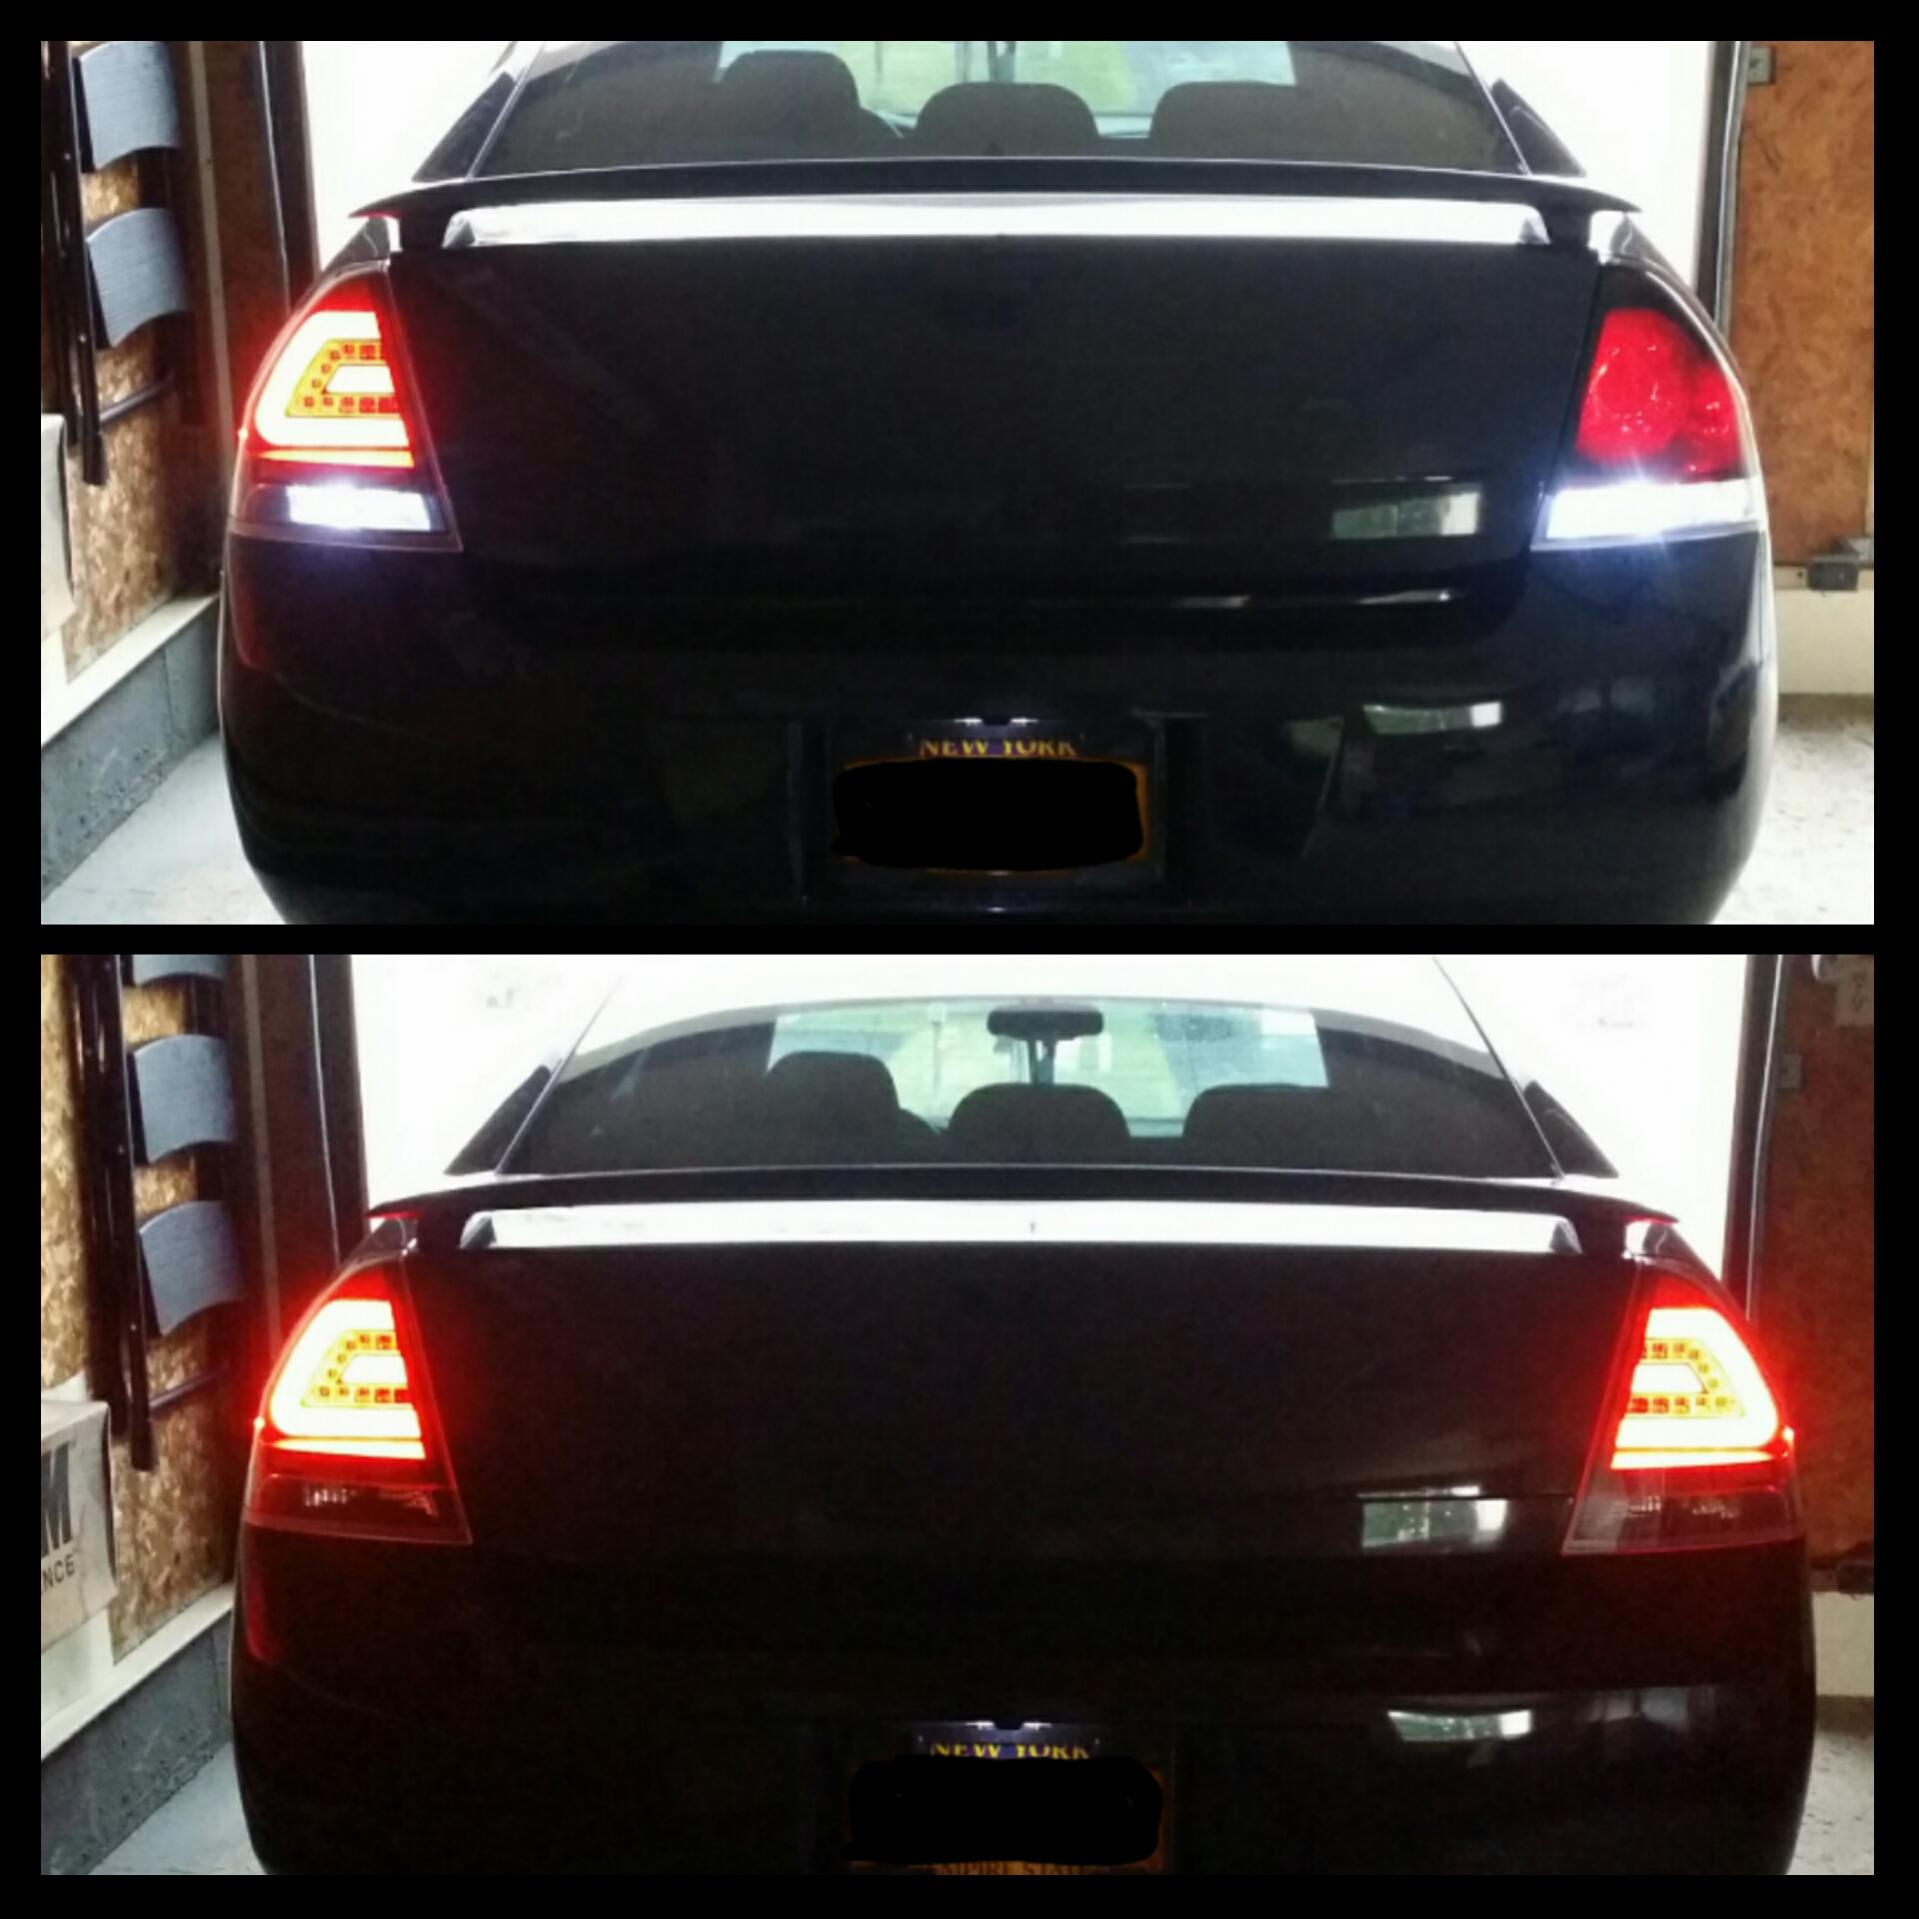 New Stylish Spyder Led Tail Lights Are Now Available For